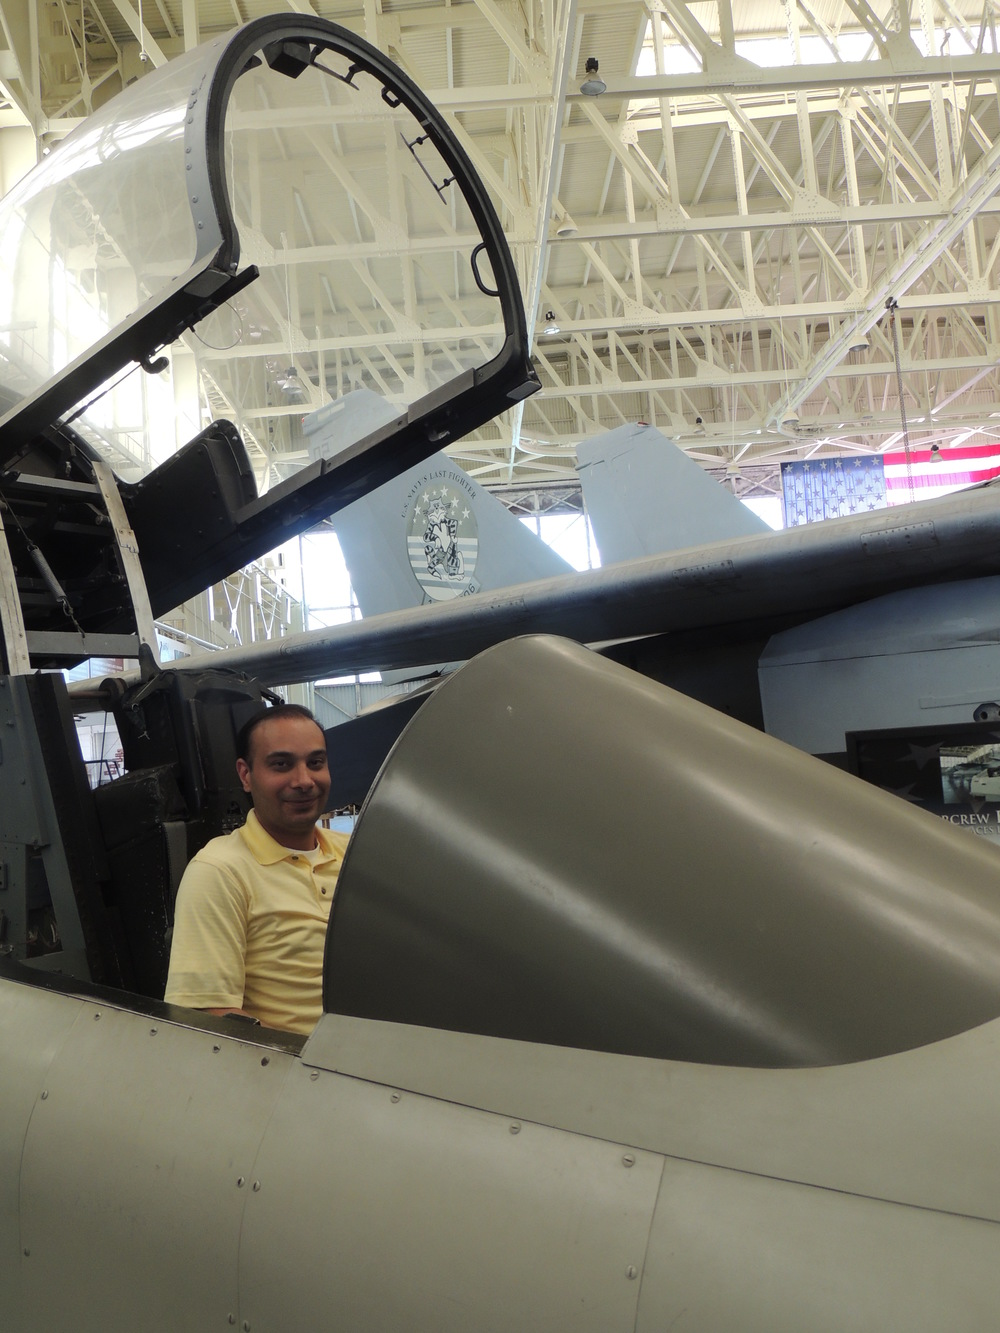 They actually let me sit in a fighter jet. Awesome!